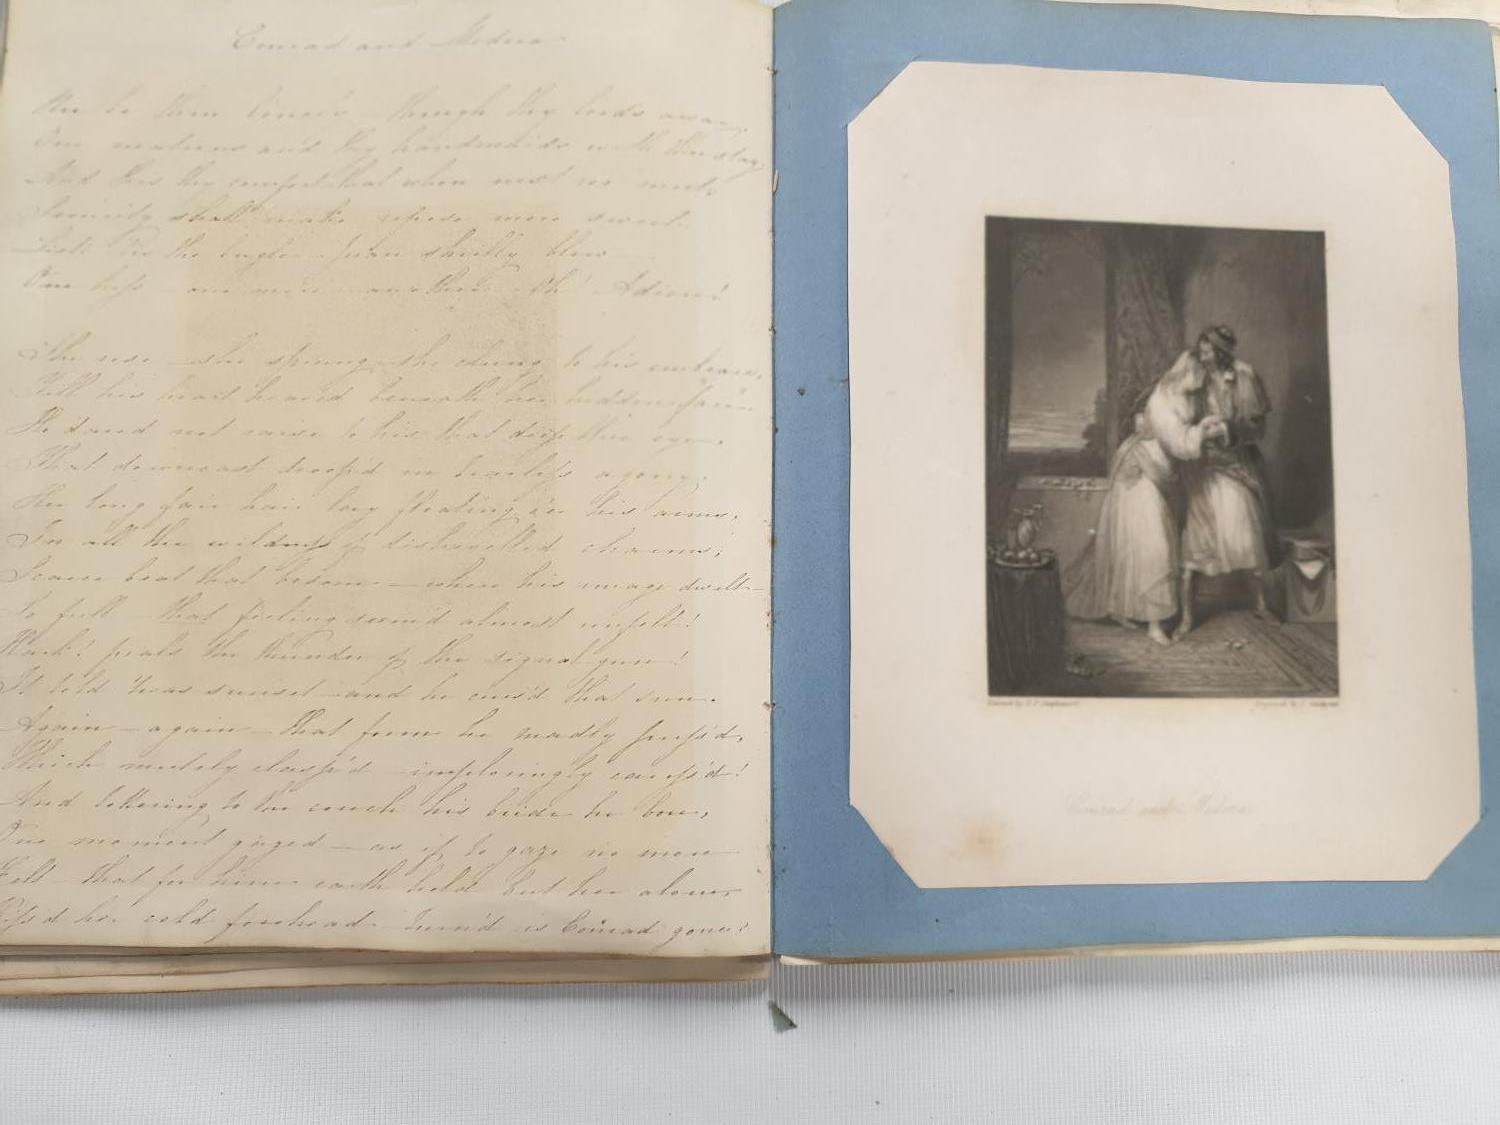 Lot 460 - A hand written book along with coloured and black and withe prints with inscriptions.